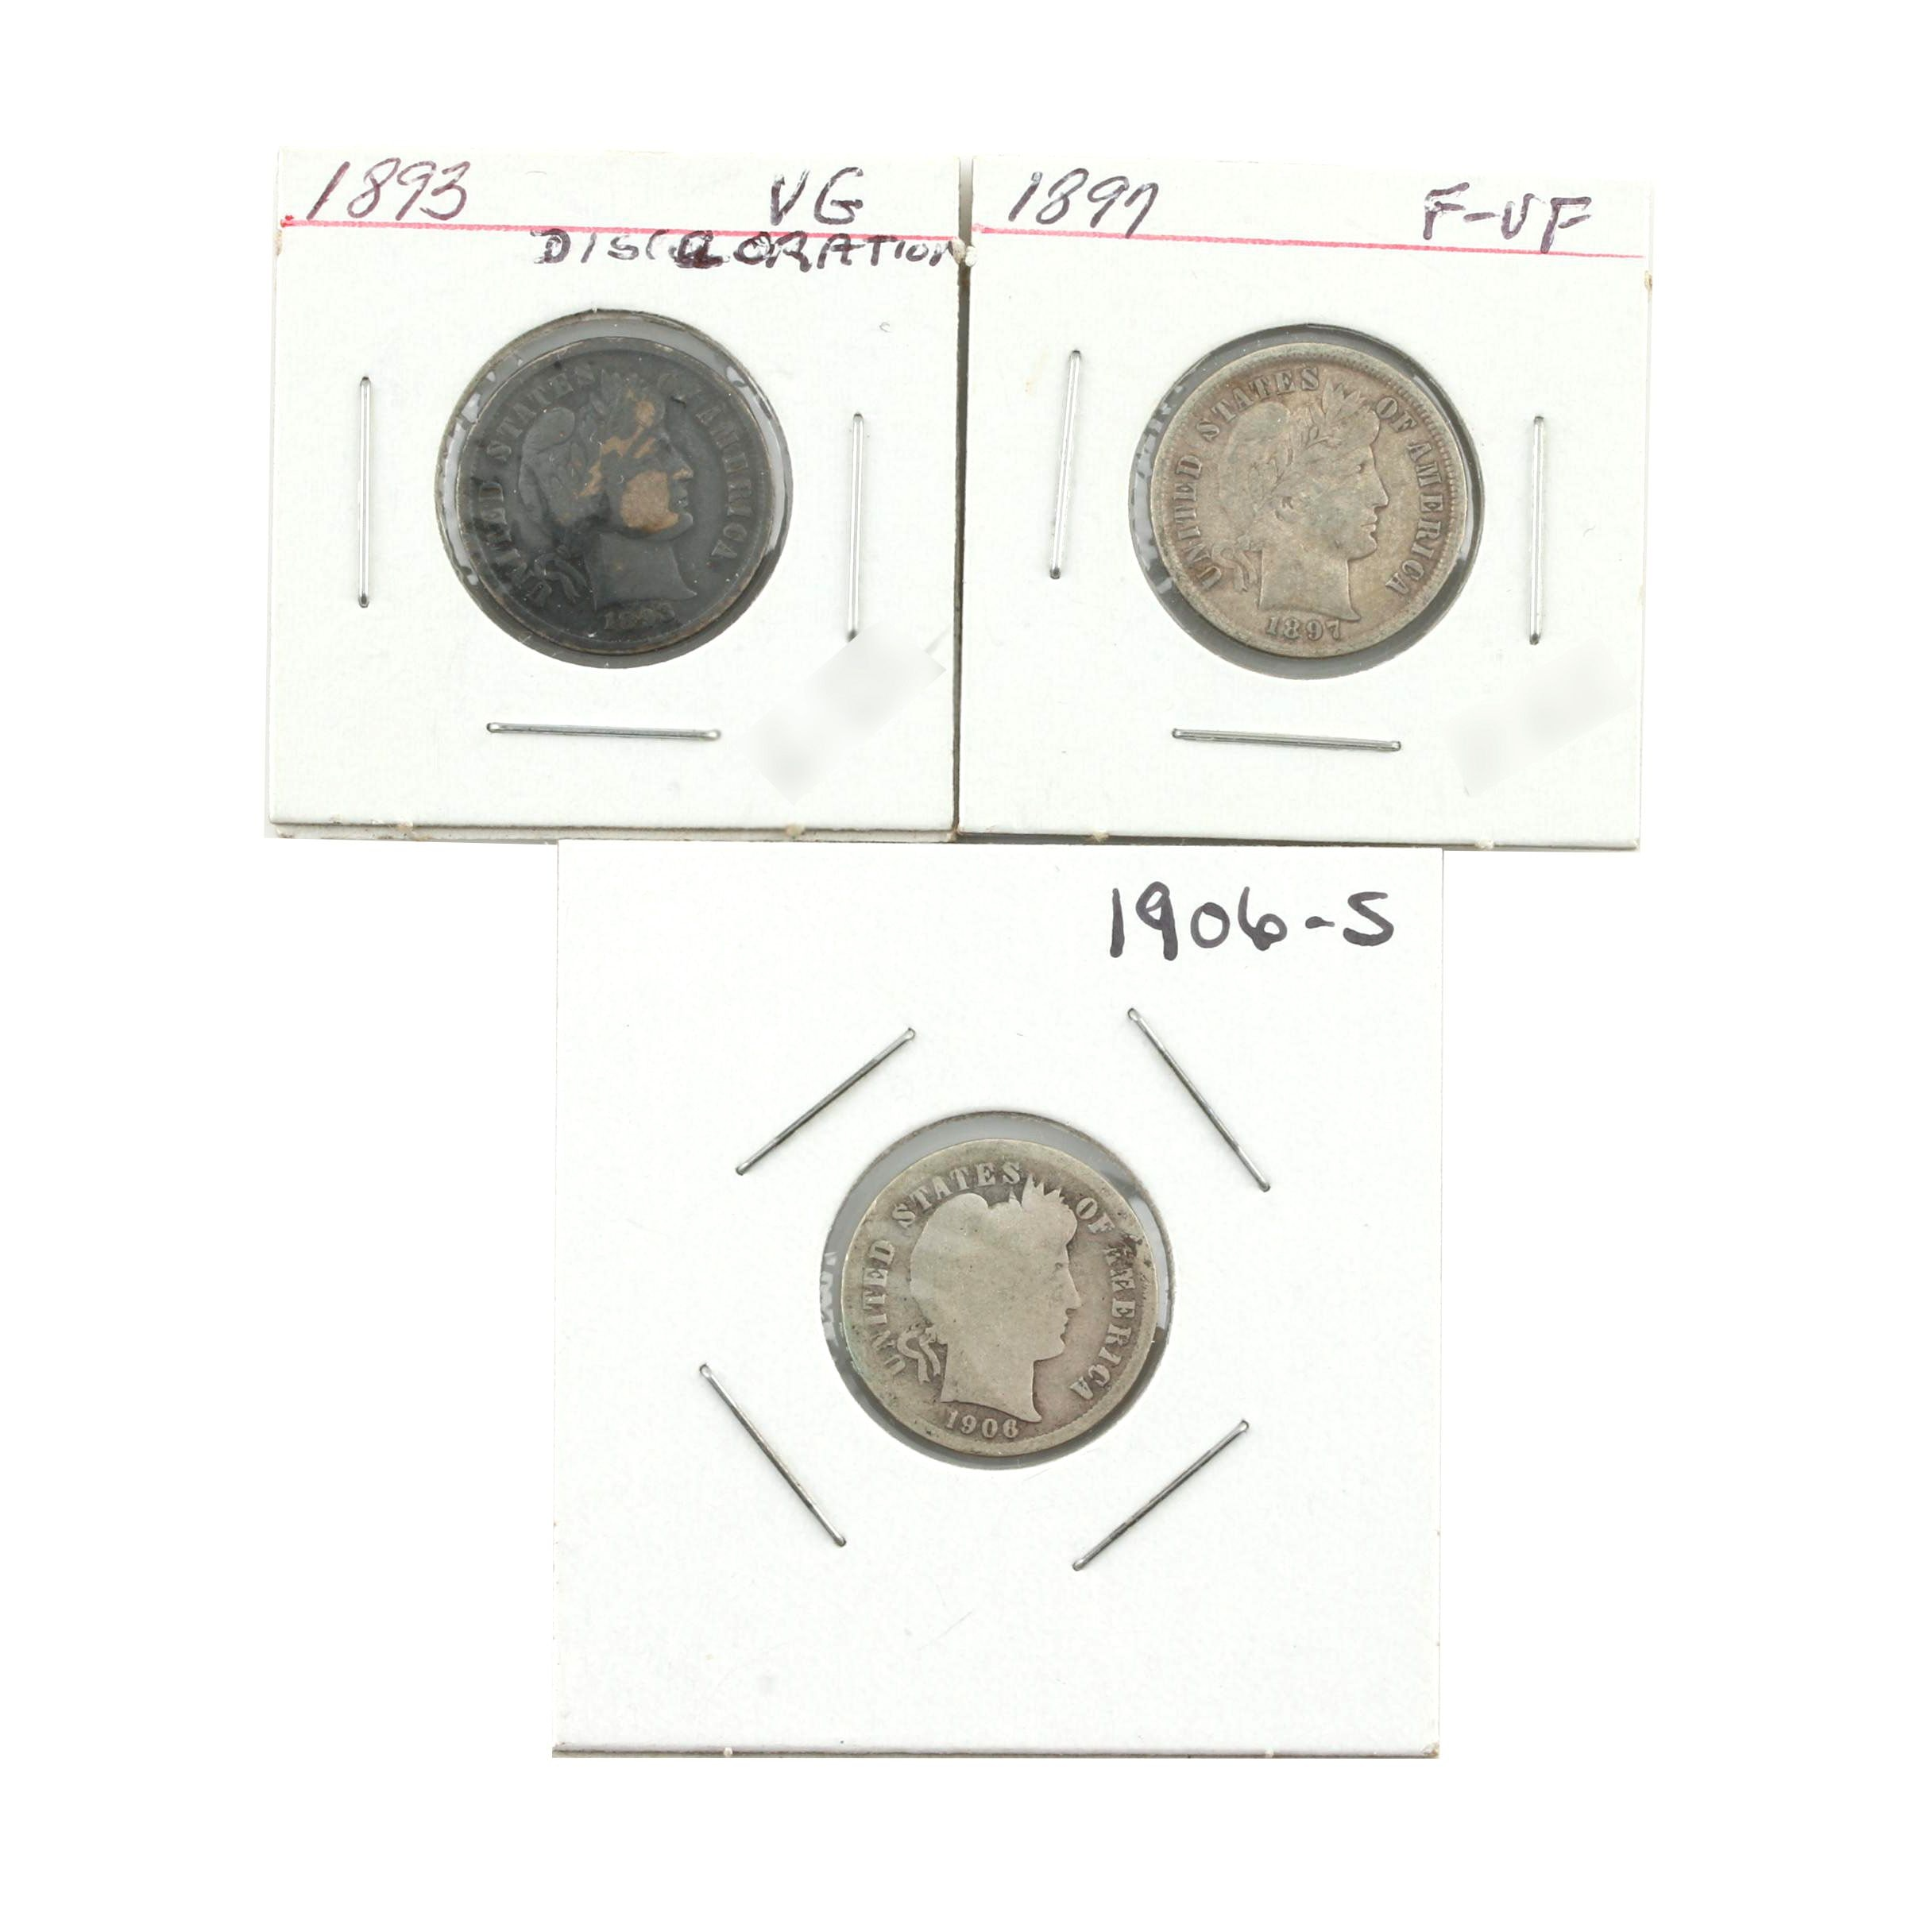 Group of Three Silver Barber Dimes: 1893, 1897, 1906-S